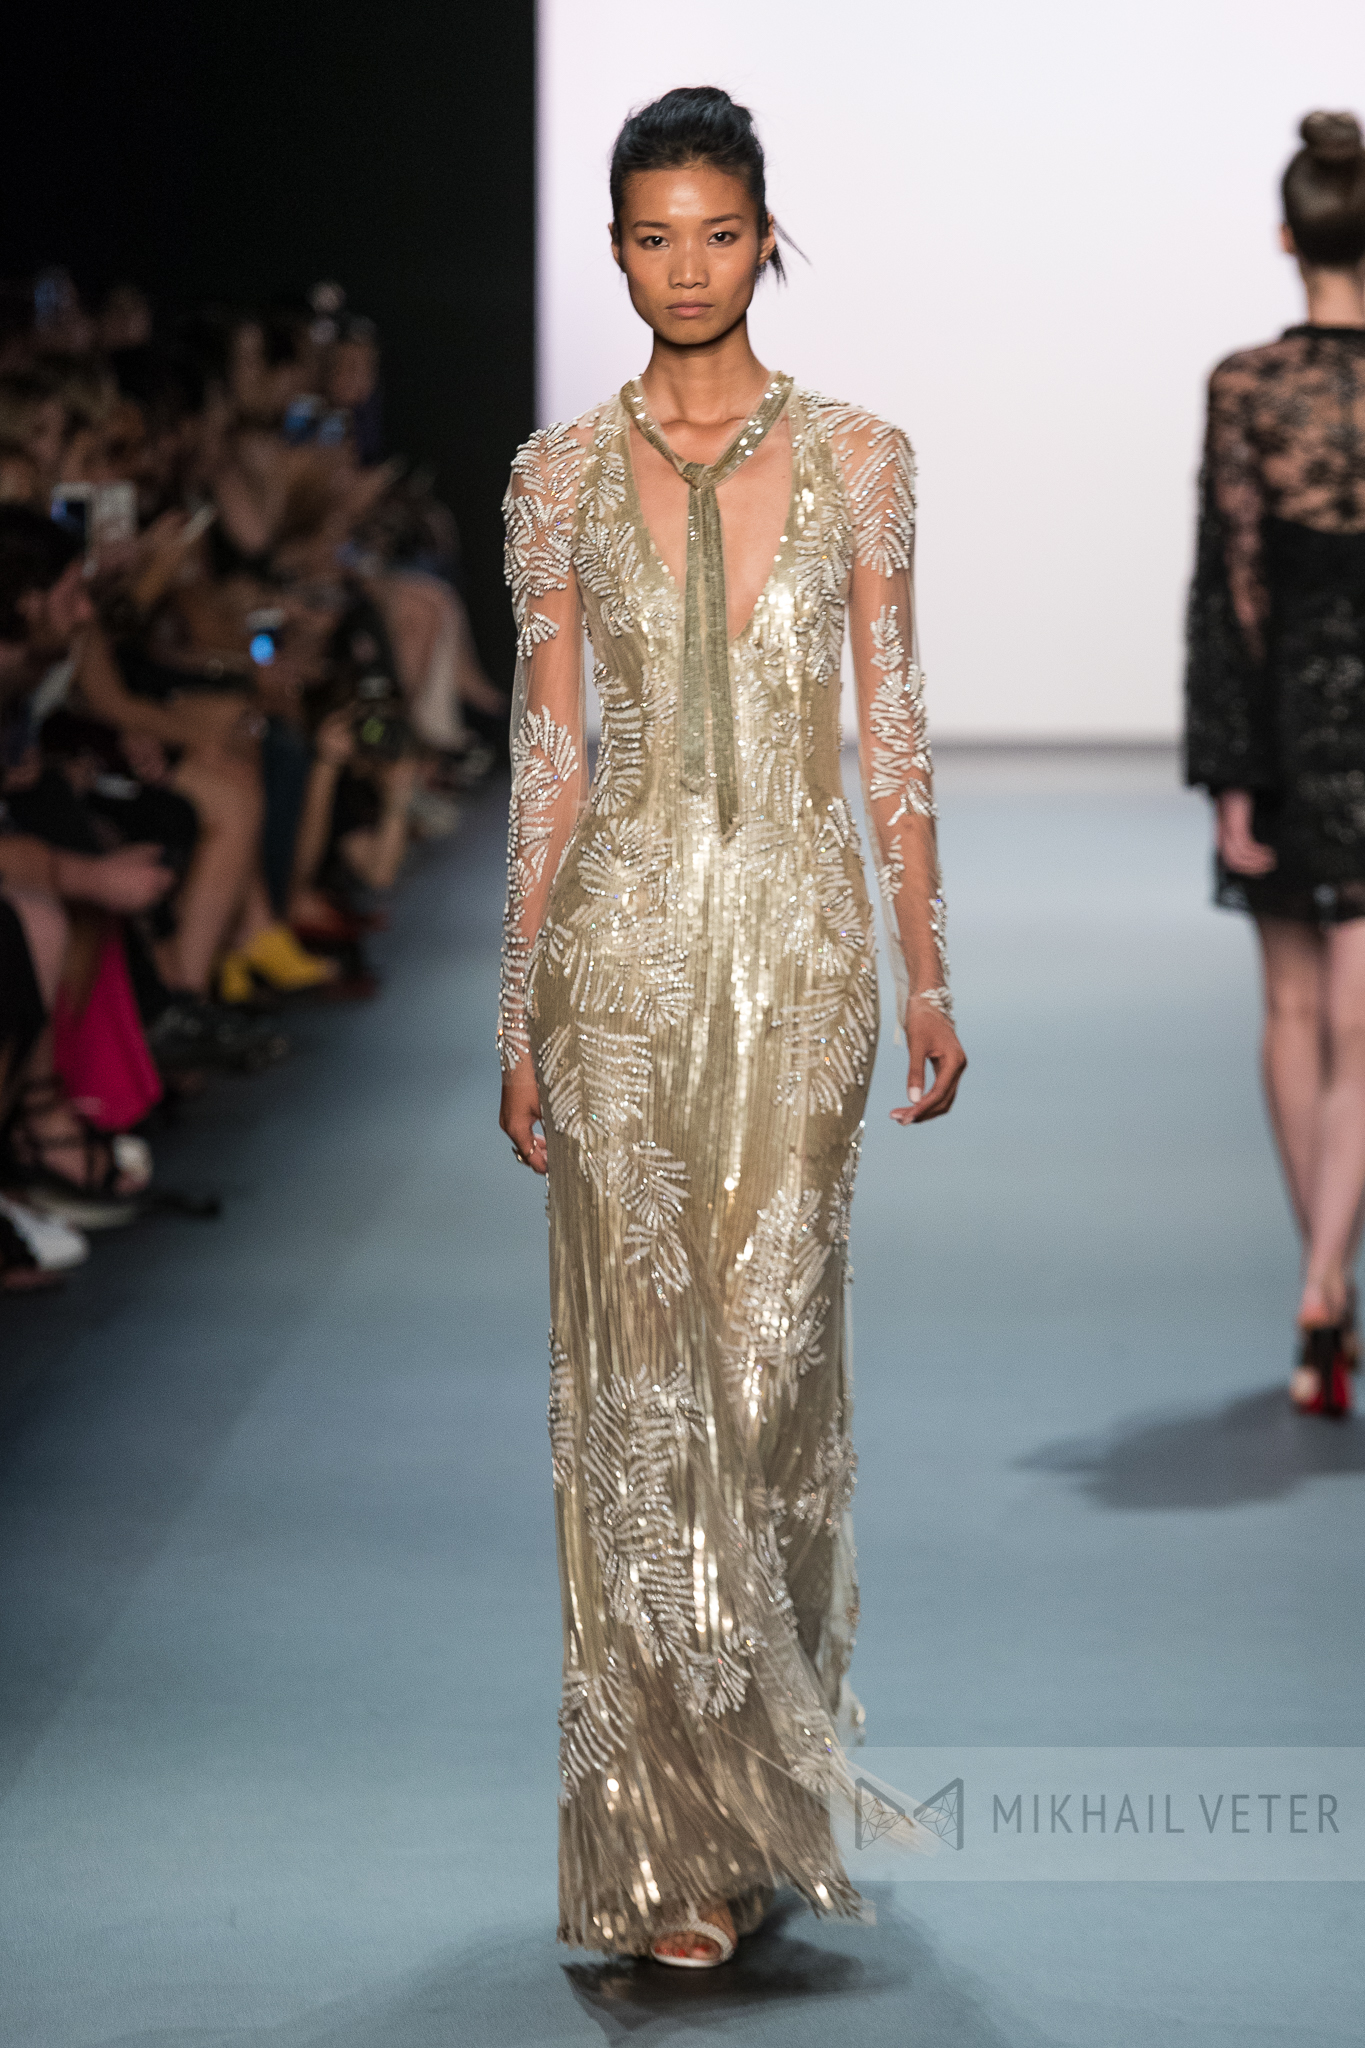 jenny-packham-new-york-fashion-week-0294